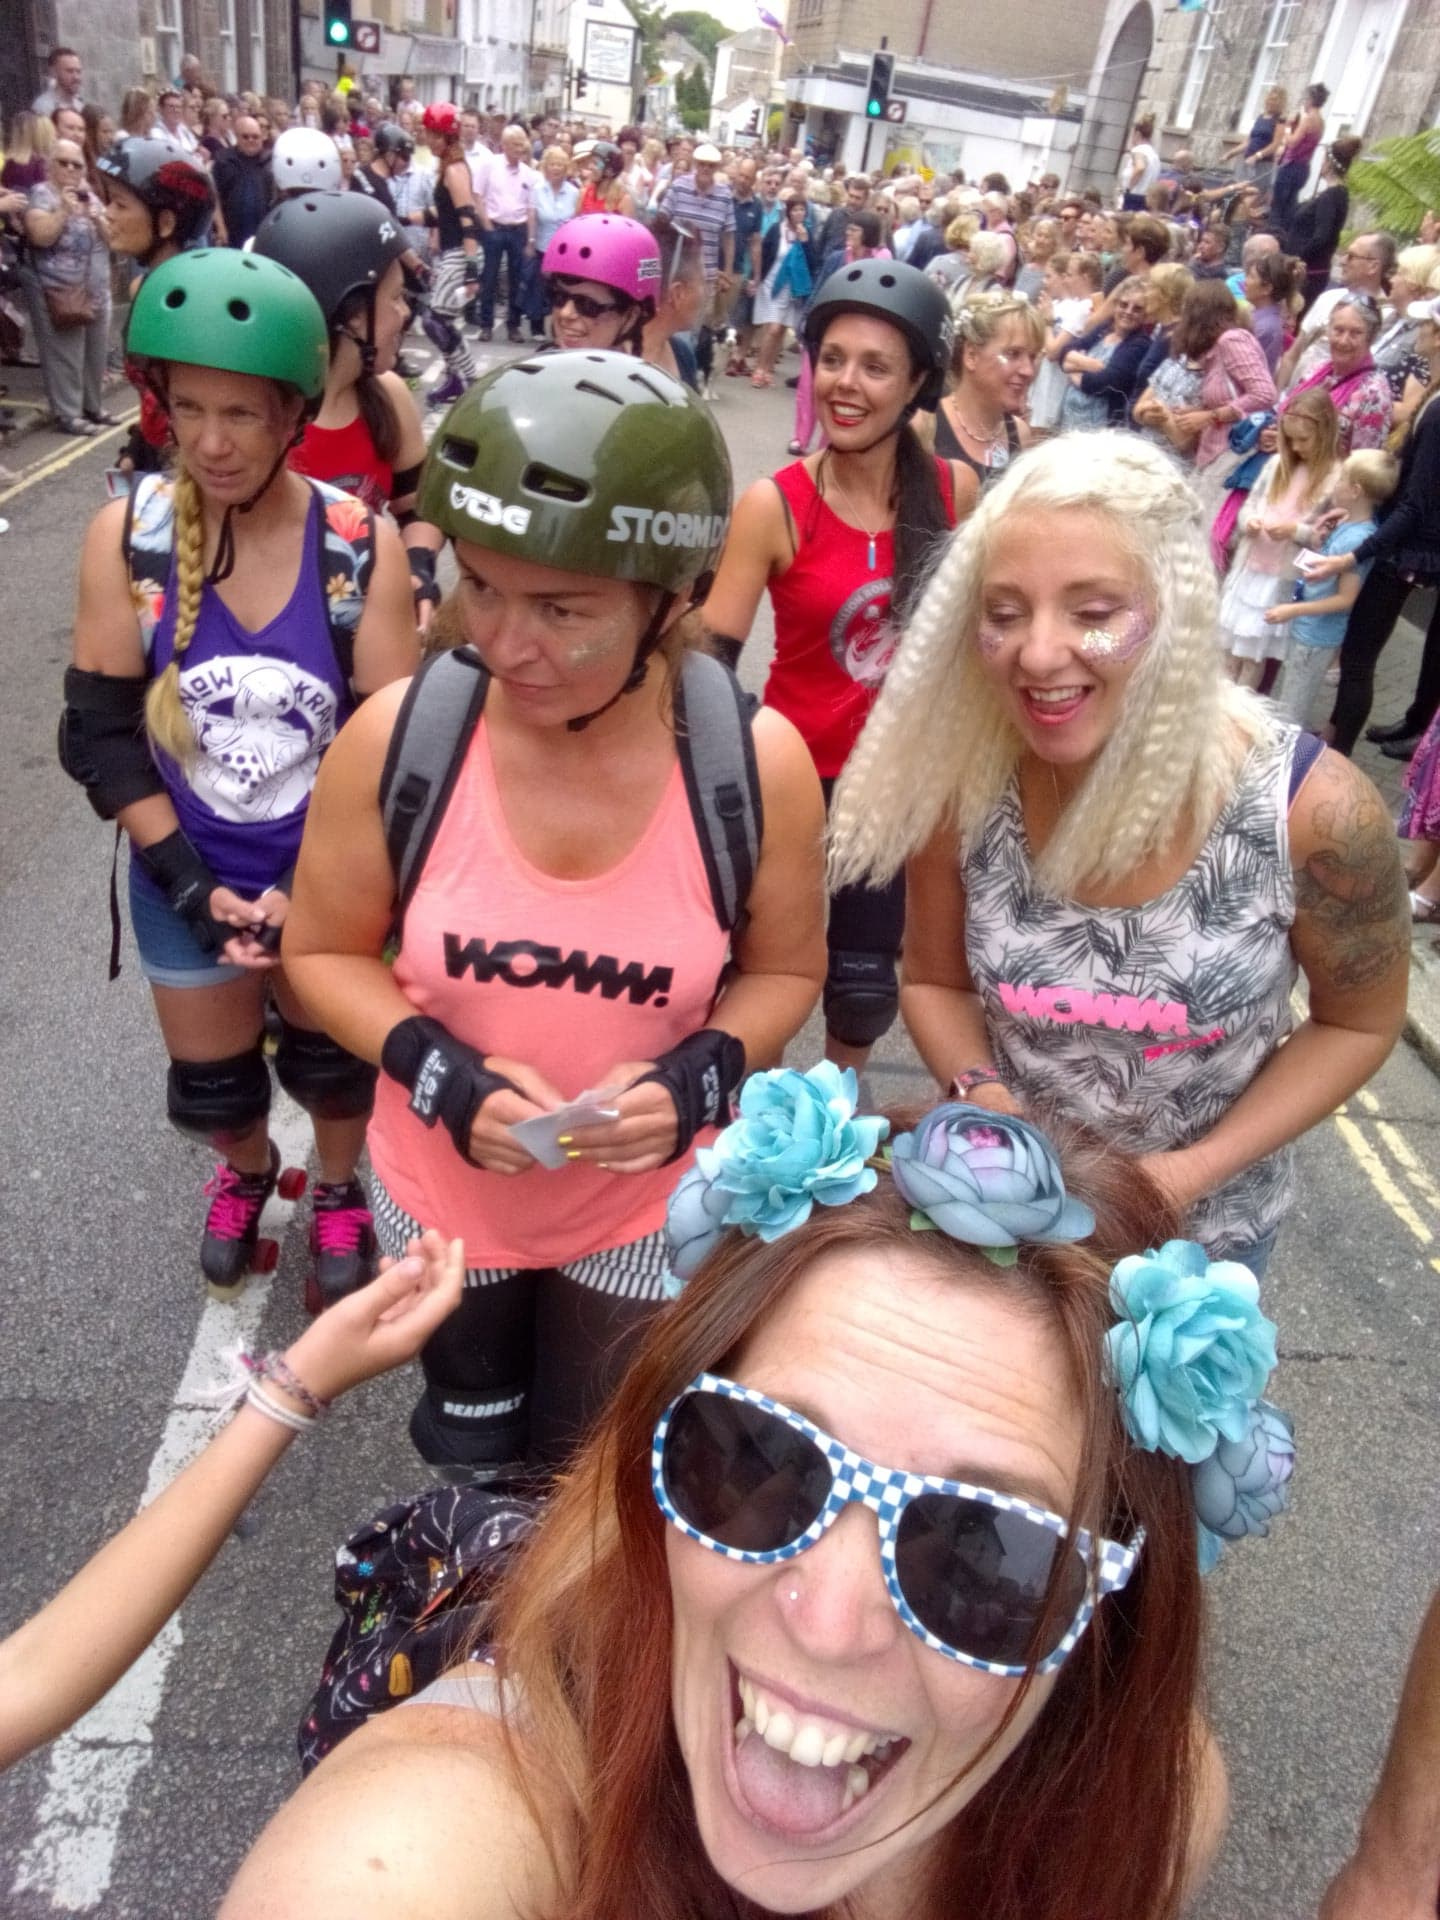 My roller derby team took part in the 1pm parade.